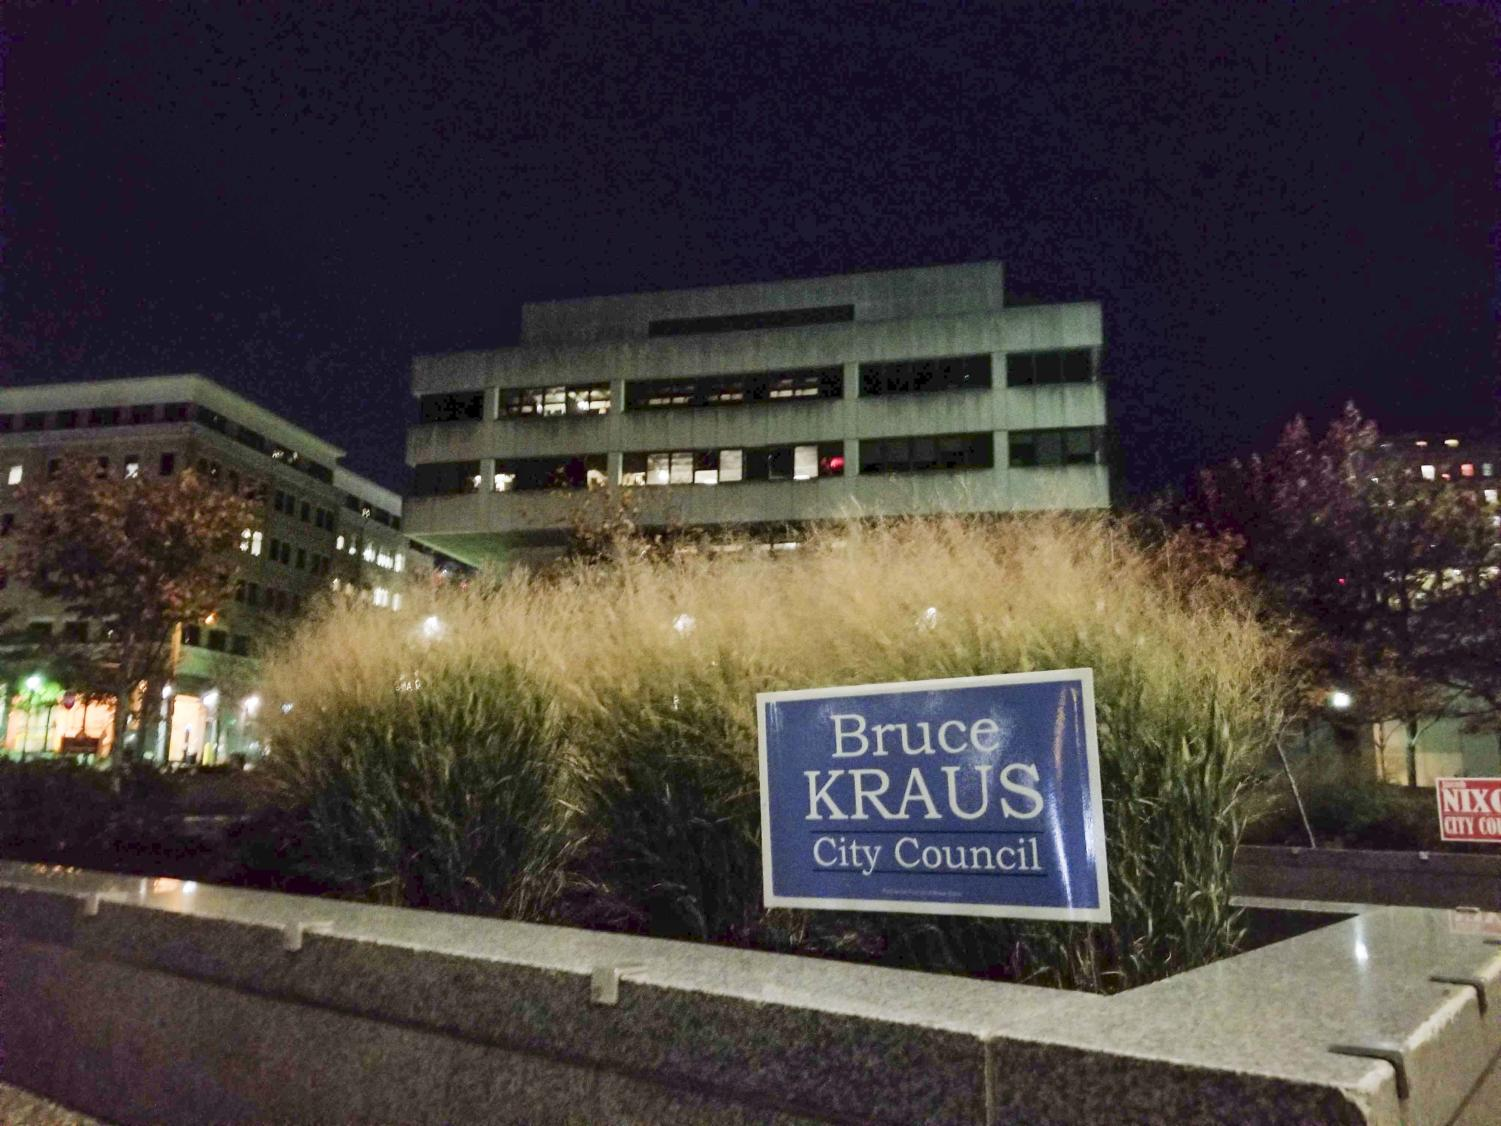 Incumbent Bruce Kraus beat independent Jacob Nixon in Tuesday's election for the District 3 City Council seat.